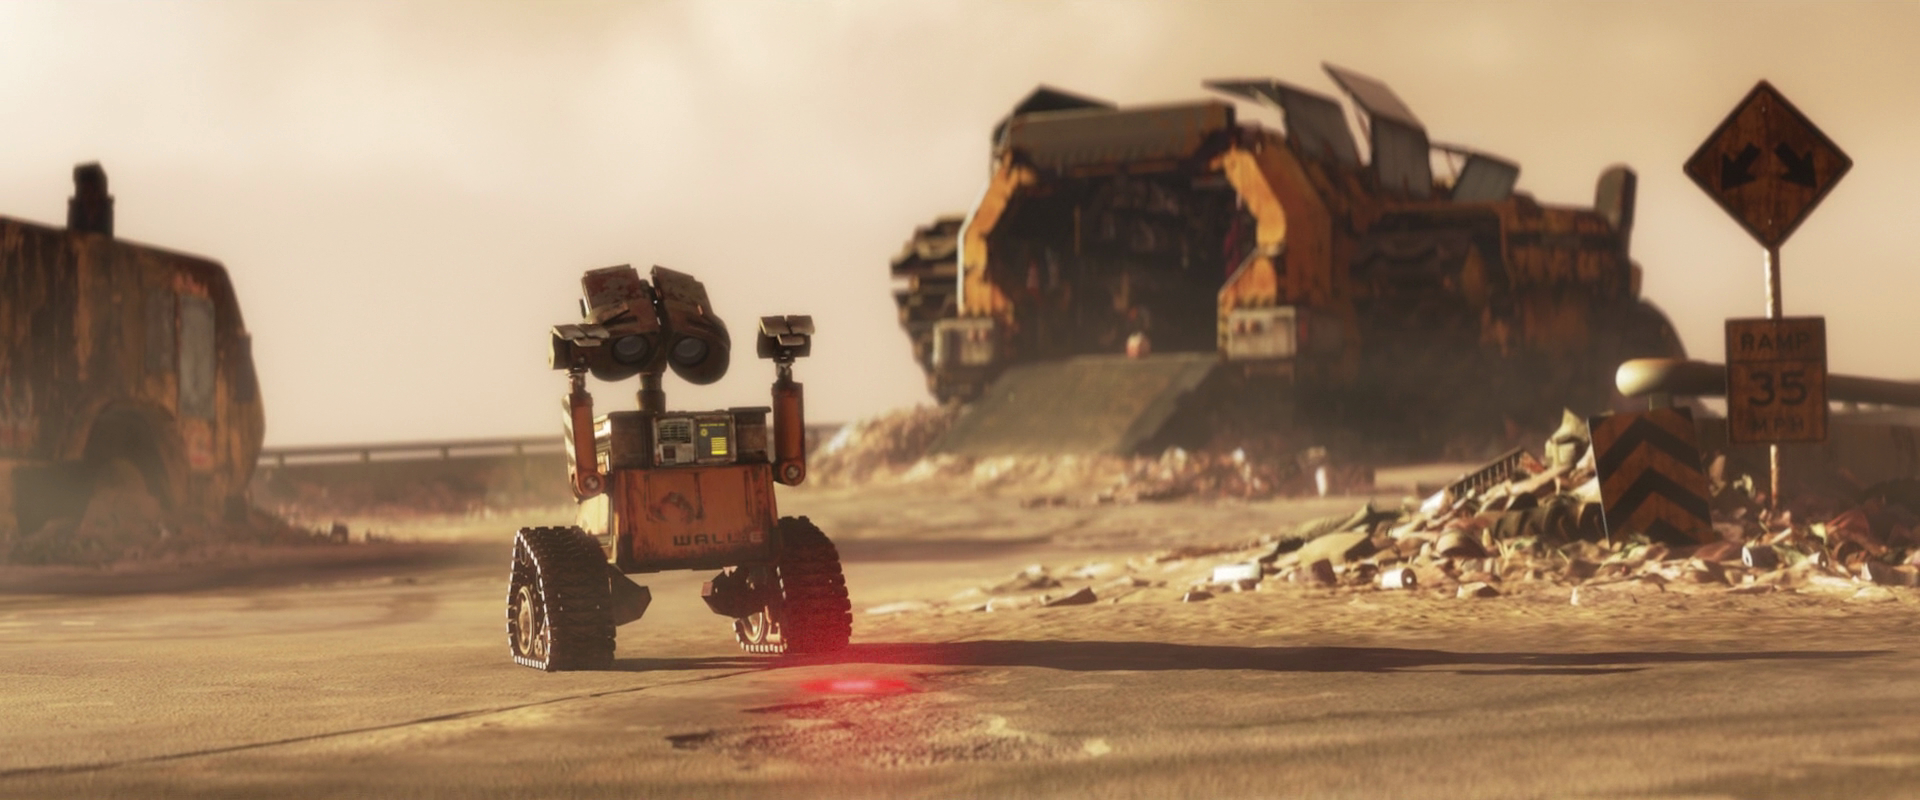 wall-e Movie HD Wallpaper